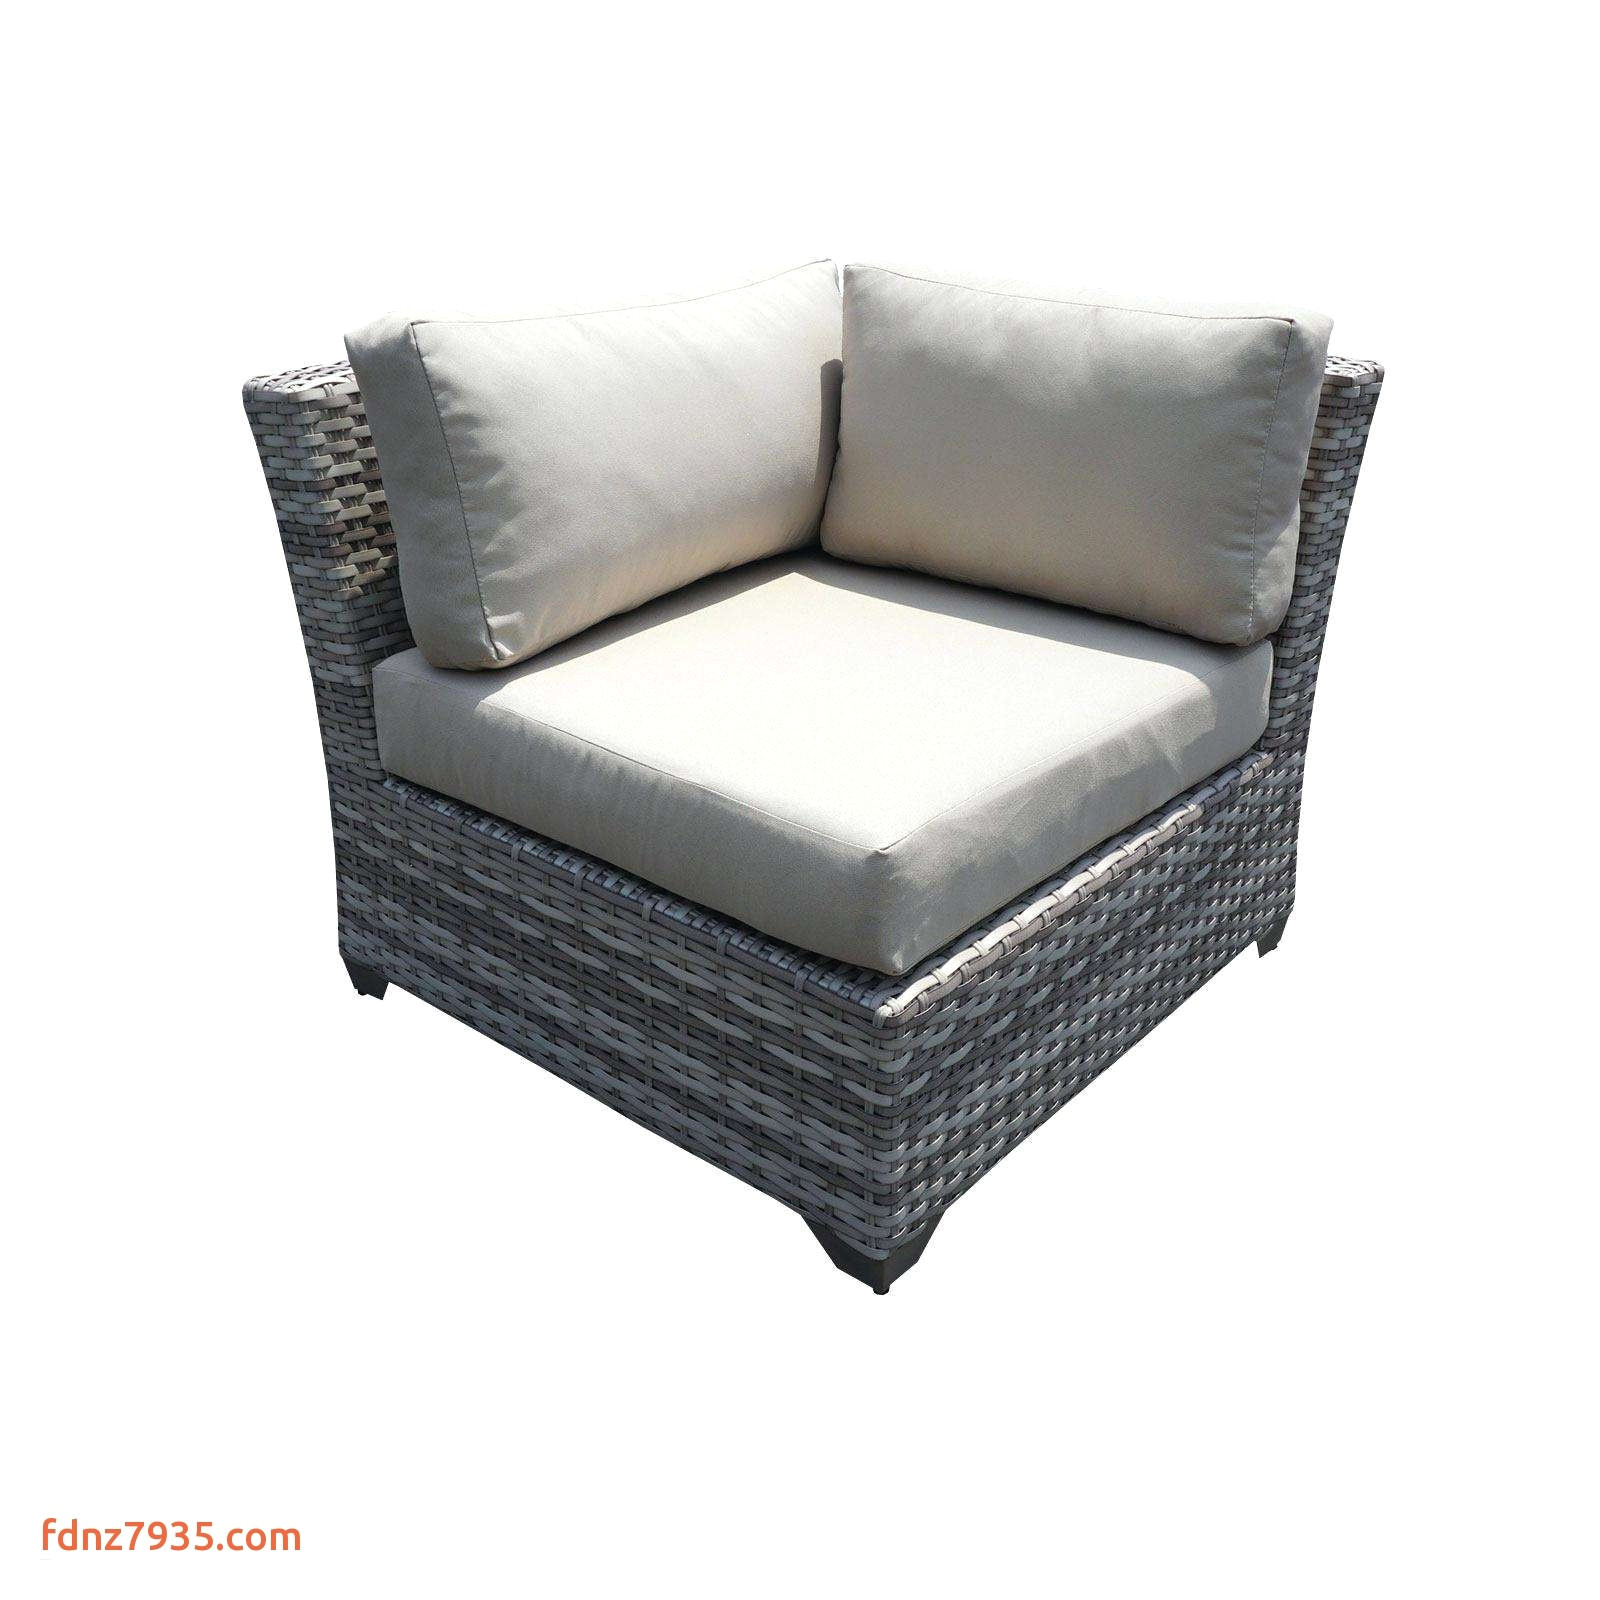 Outdoor Furniture Stores Augusta Ga Patio Chair Sling Replacement Diy Adinaporter